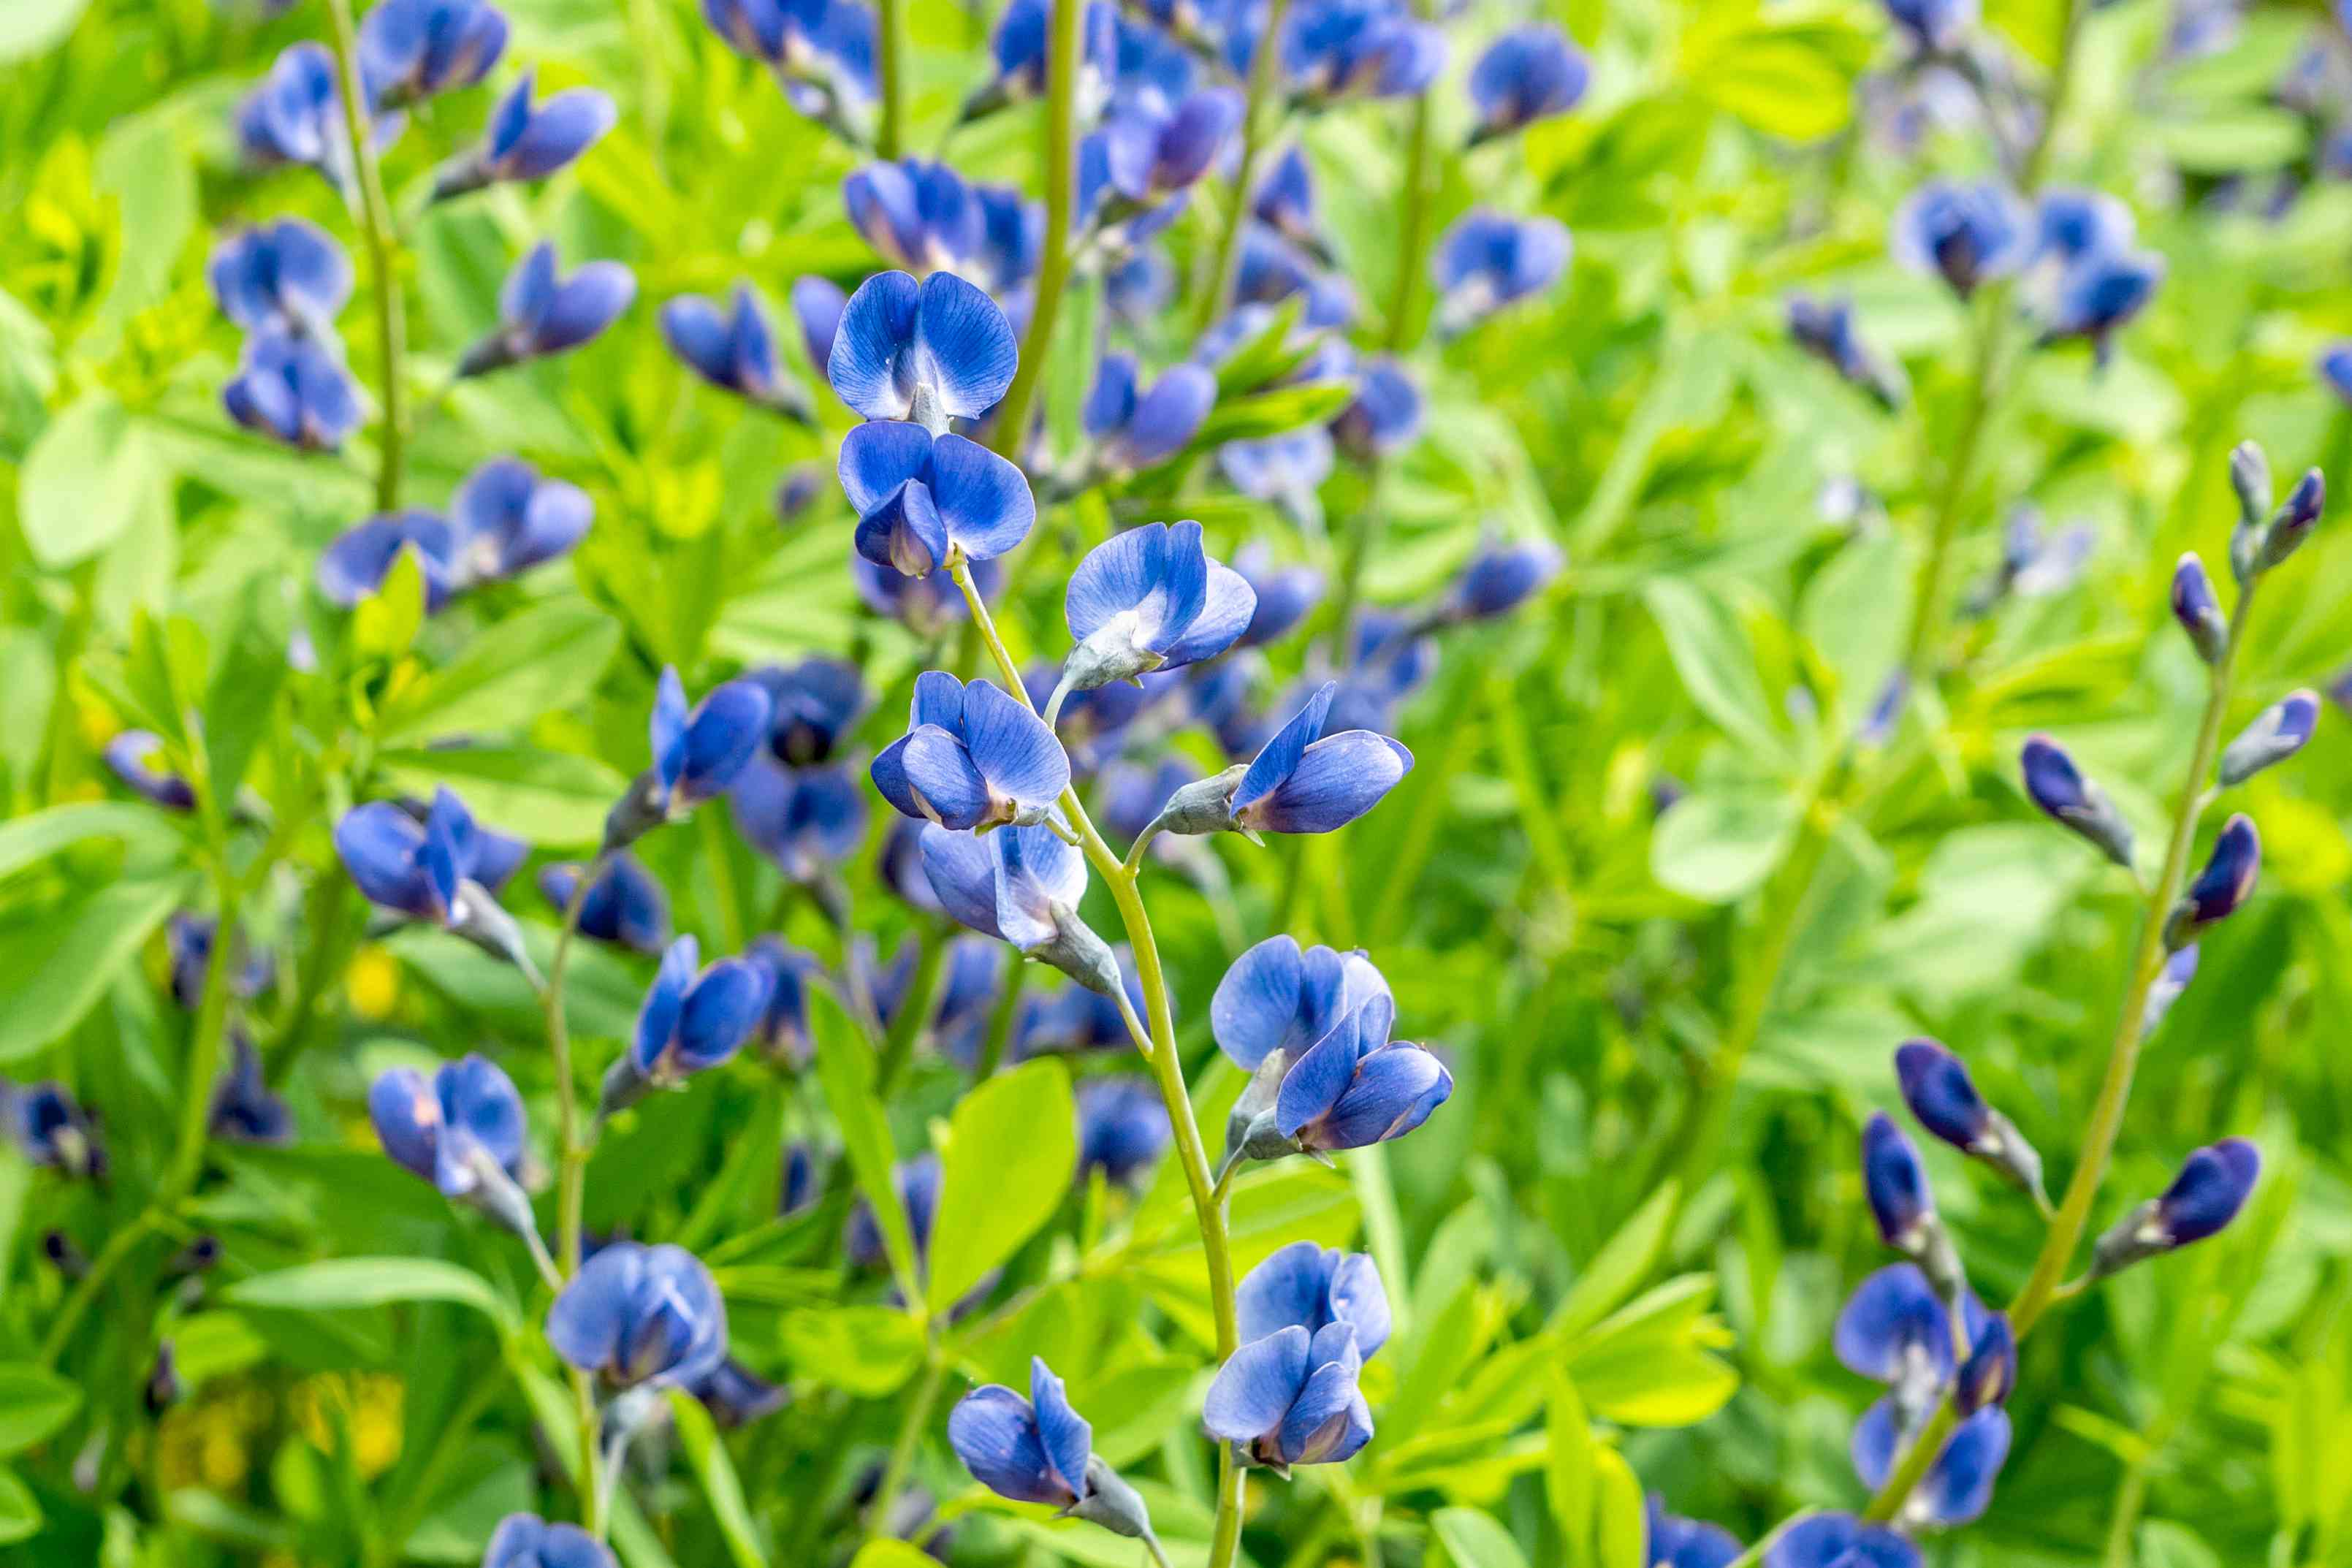 False indigo with deep blue flowers on thin stems with bright green leaves